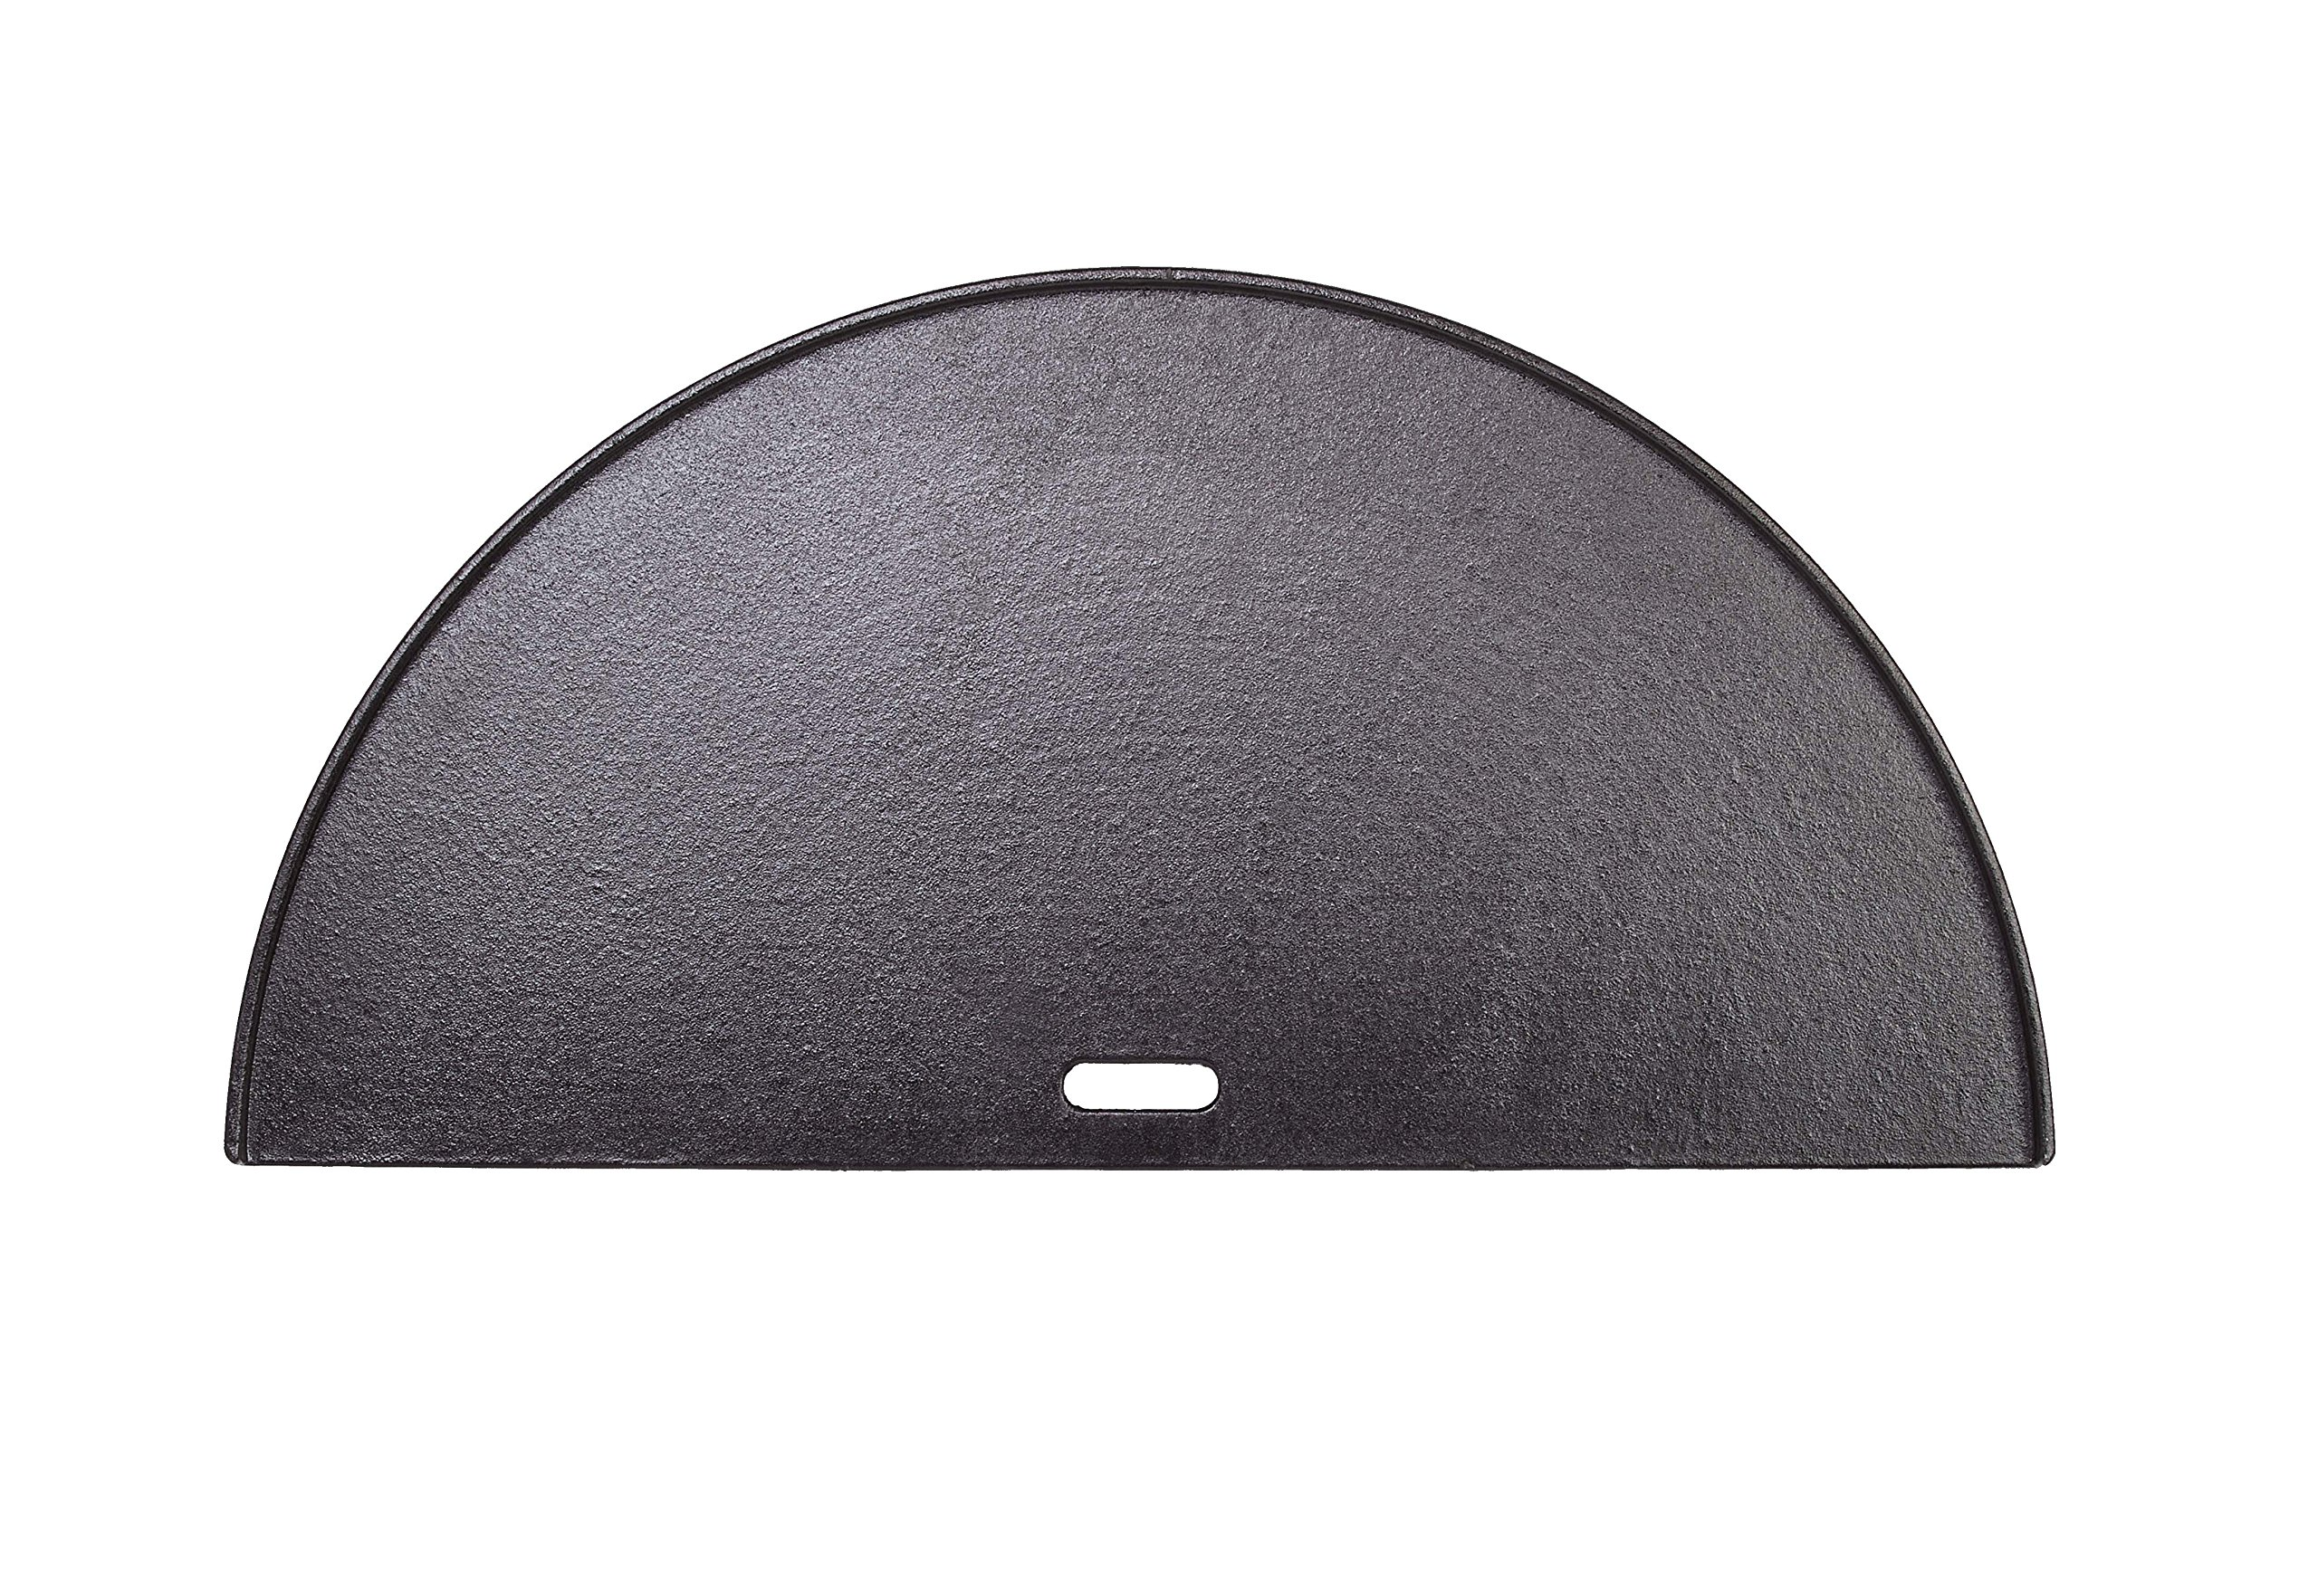 Kamado Joe KJ-HCIGRIDDLE Classic Joe Half Moon Reversible Griddle, Cast Iron by Kamado Joe